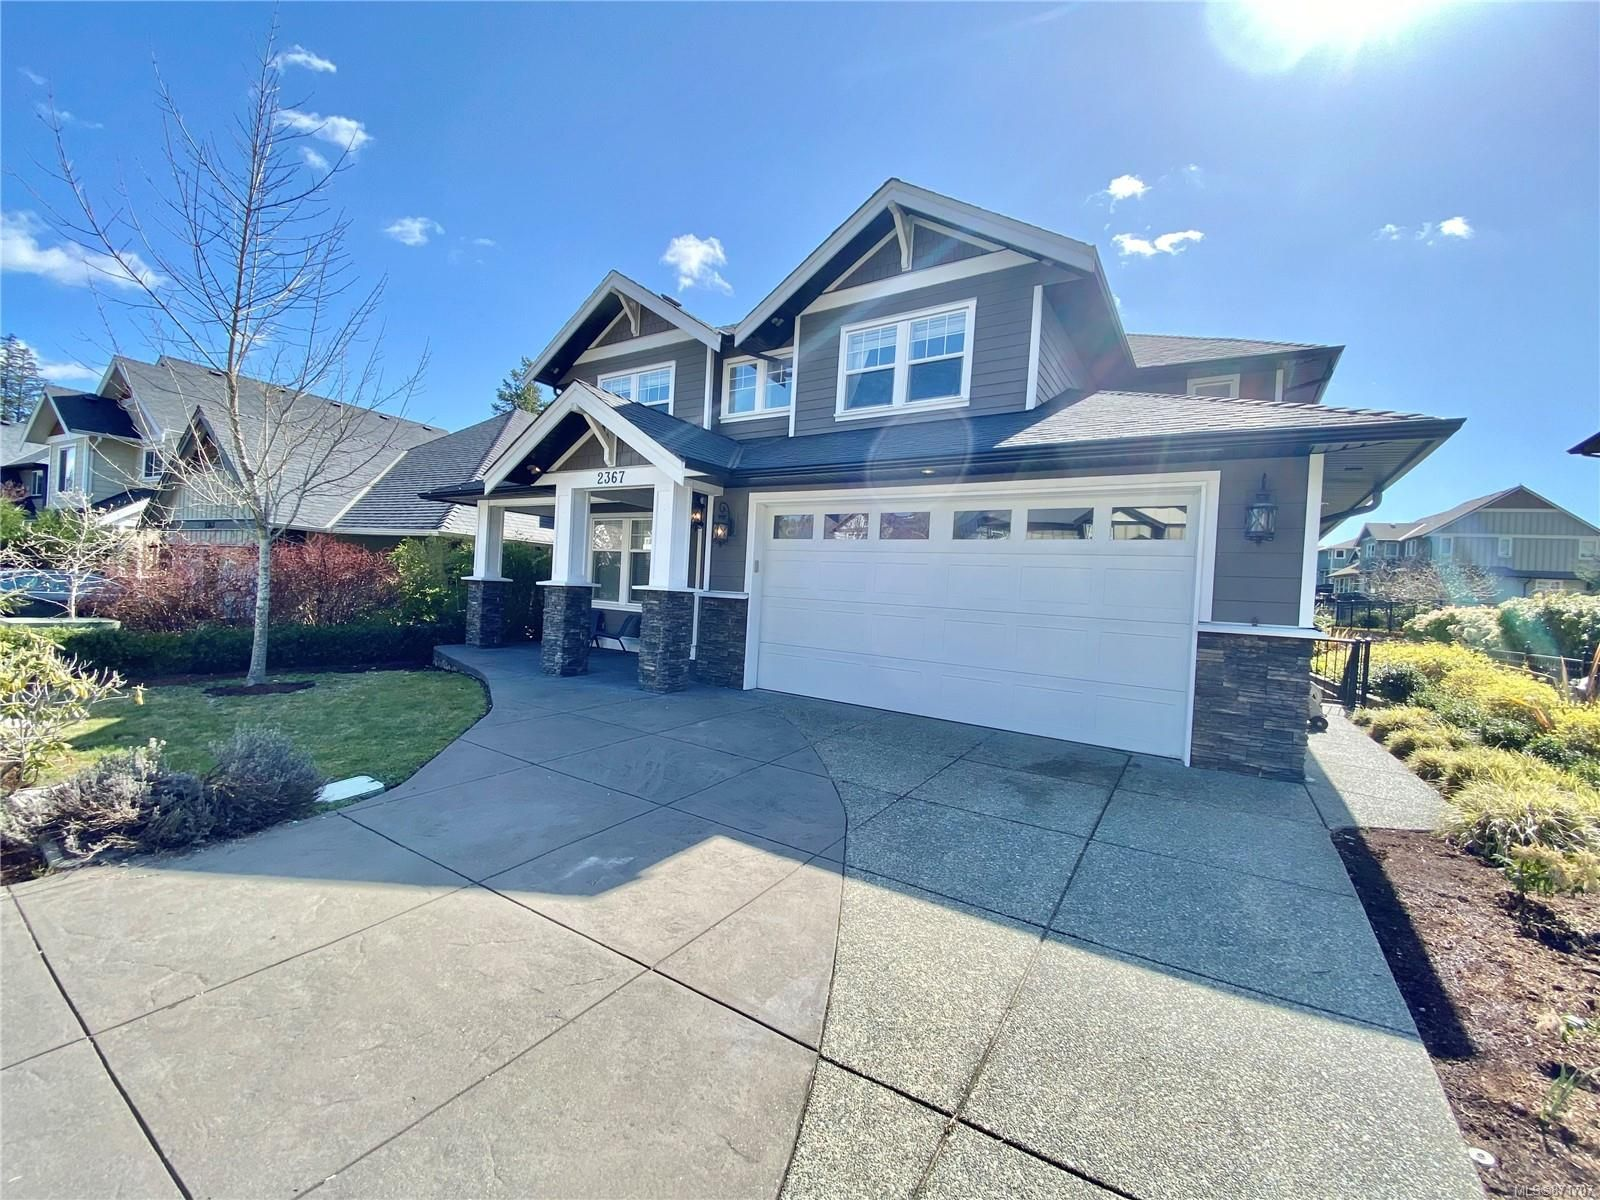 Main Photo: 2367 Echo Valley Dr in : La Bear Mountain House for sale (Langford)  : MLS®# 871707